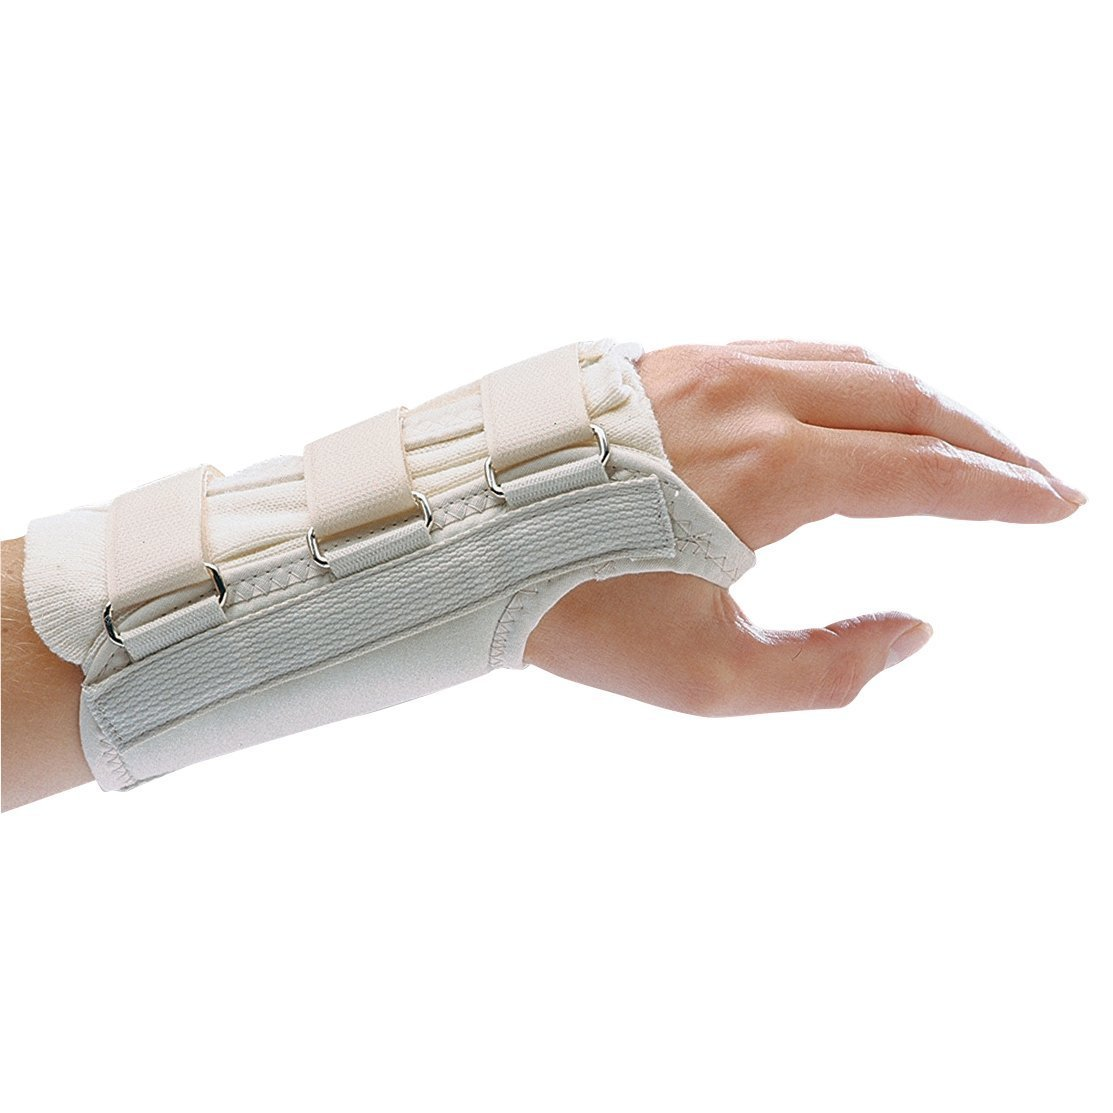 Rolyan D-Ring Wrist and Thumb Spica Splint for Right Wrist, Beige Wrist Splint for Tendonitis, Inflammation, Carpal Tunnel, Tendinitis, Easy On Easy Off Brace for Thumb & Wrist Support, Small